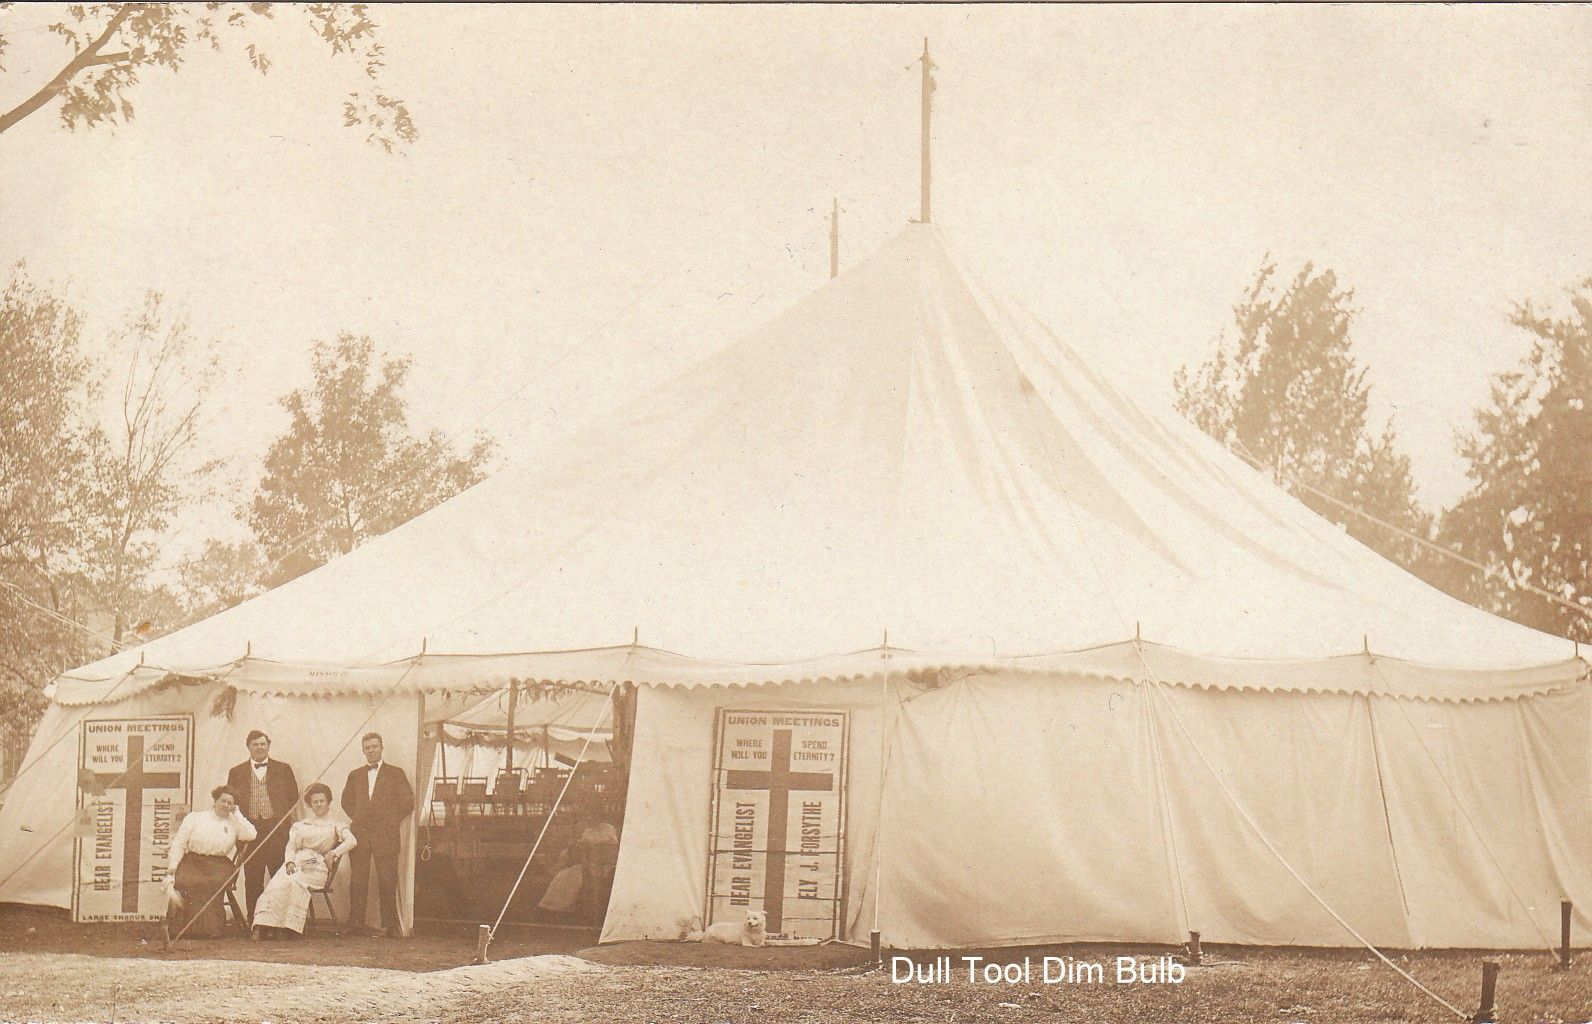 old time tent revival - Google Search & old time tent revival - Google Search | Tent Revival | Pinterest ...